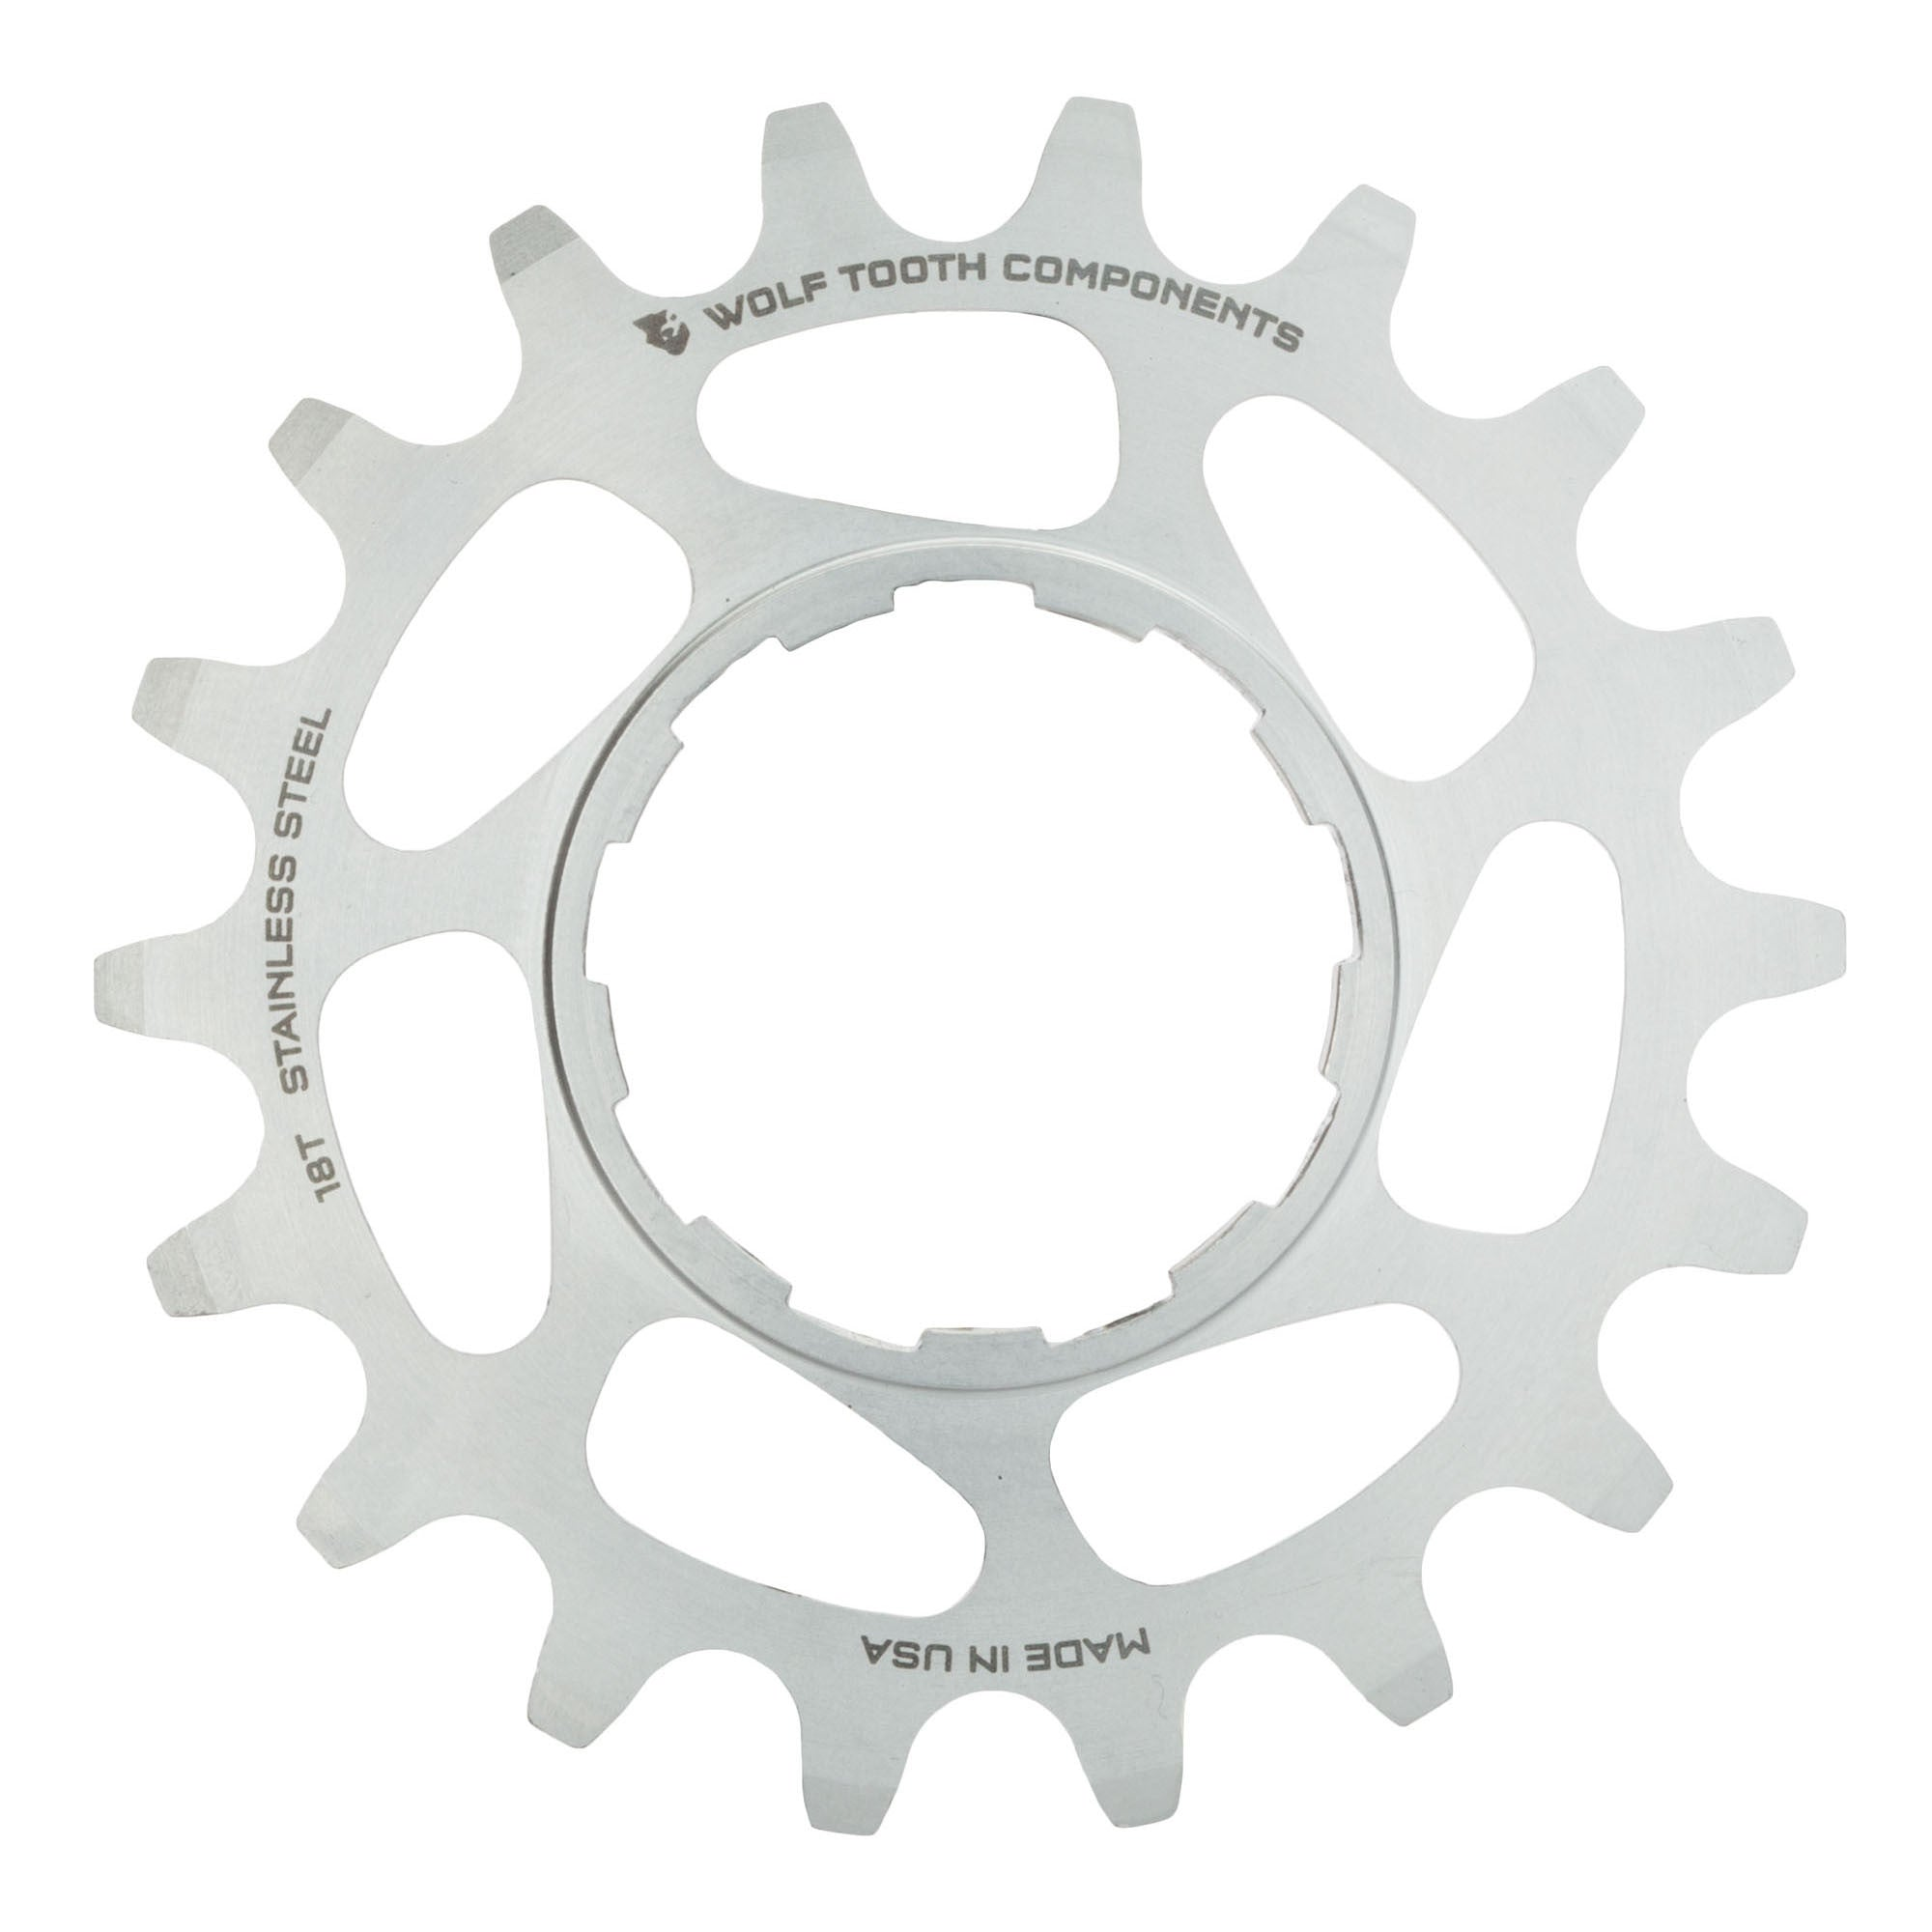 Wolf Tooth Components Single Speed Aluminum Cog 17T Compatible with 3//32